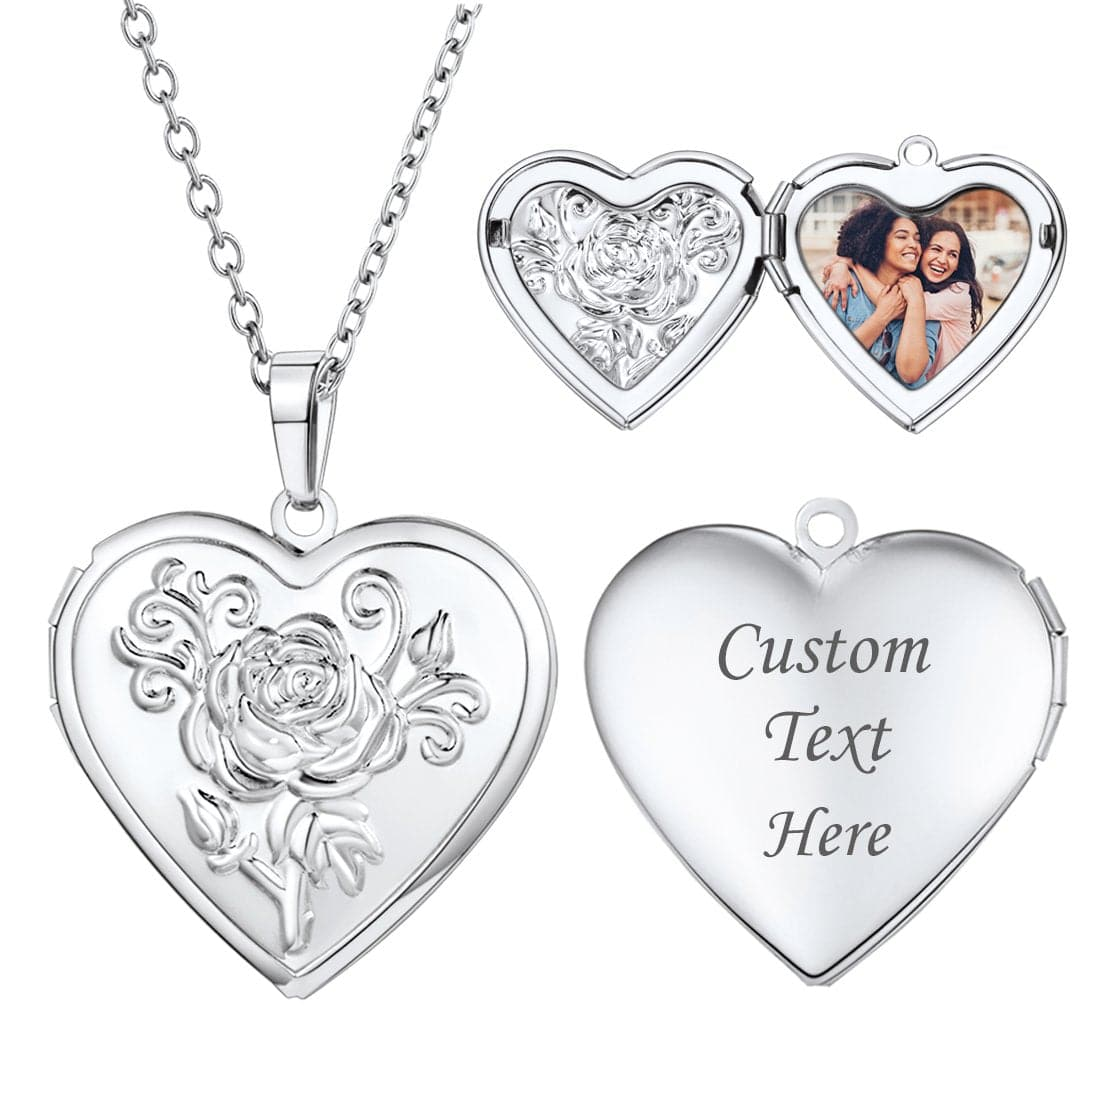 Vintage Heart Engraved Locket Necklace With Photo Personalized Gift